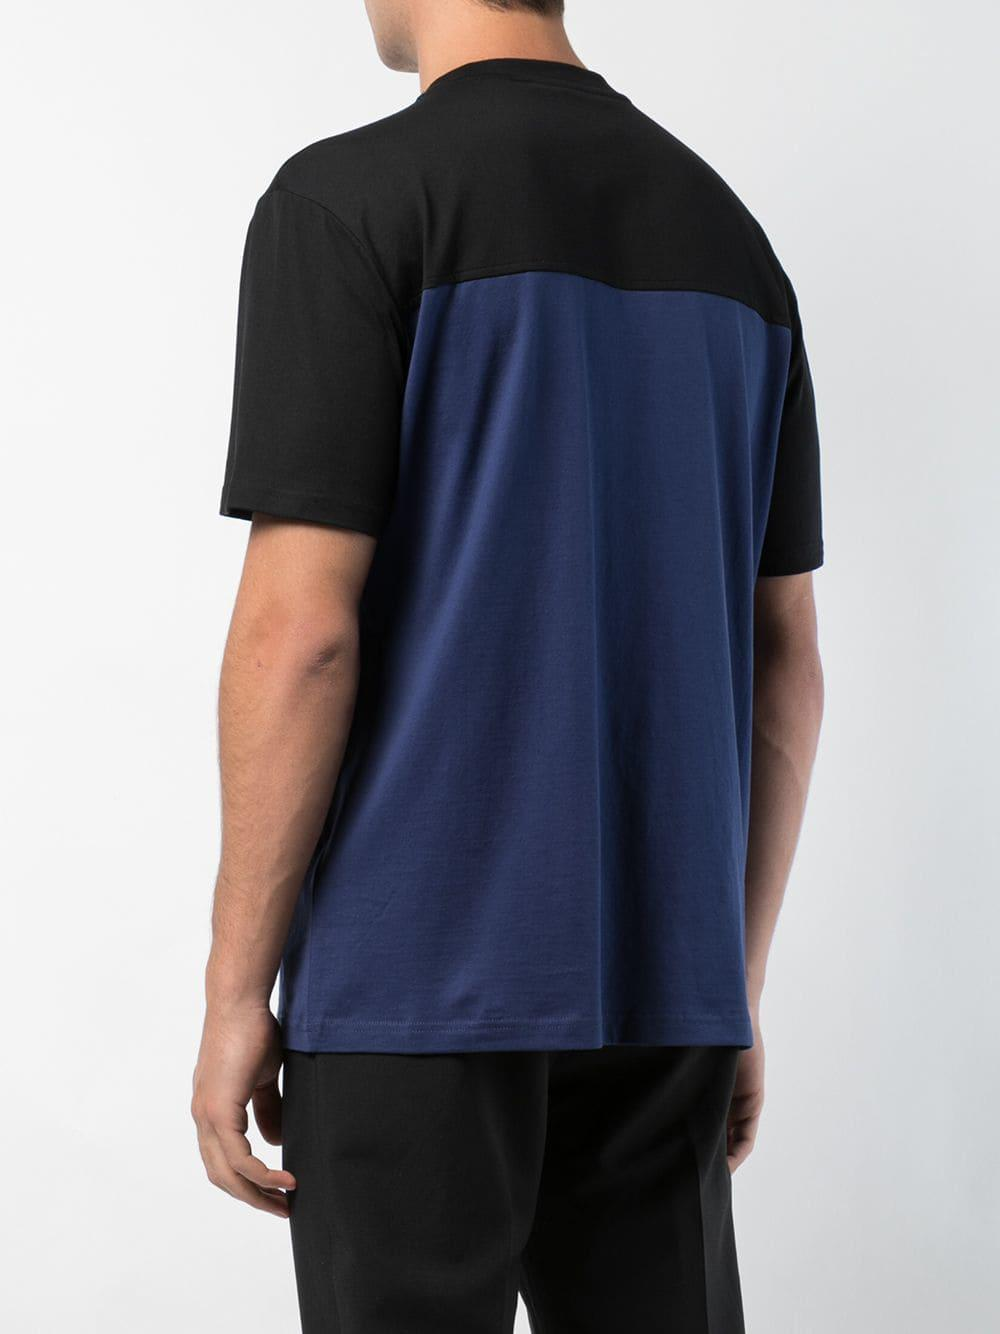 6a480afb9b04 Lyst - Givenchy T-shirt With Band in Black for Men